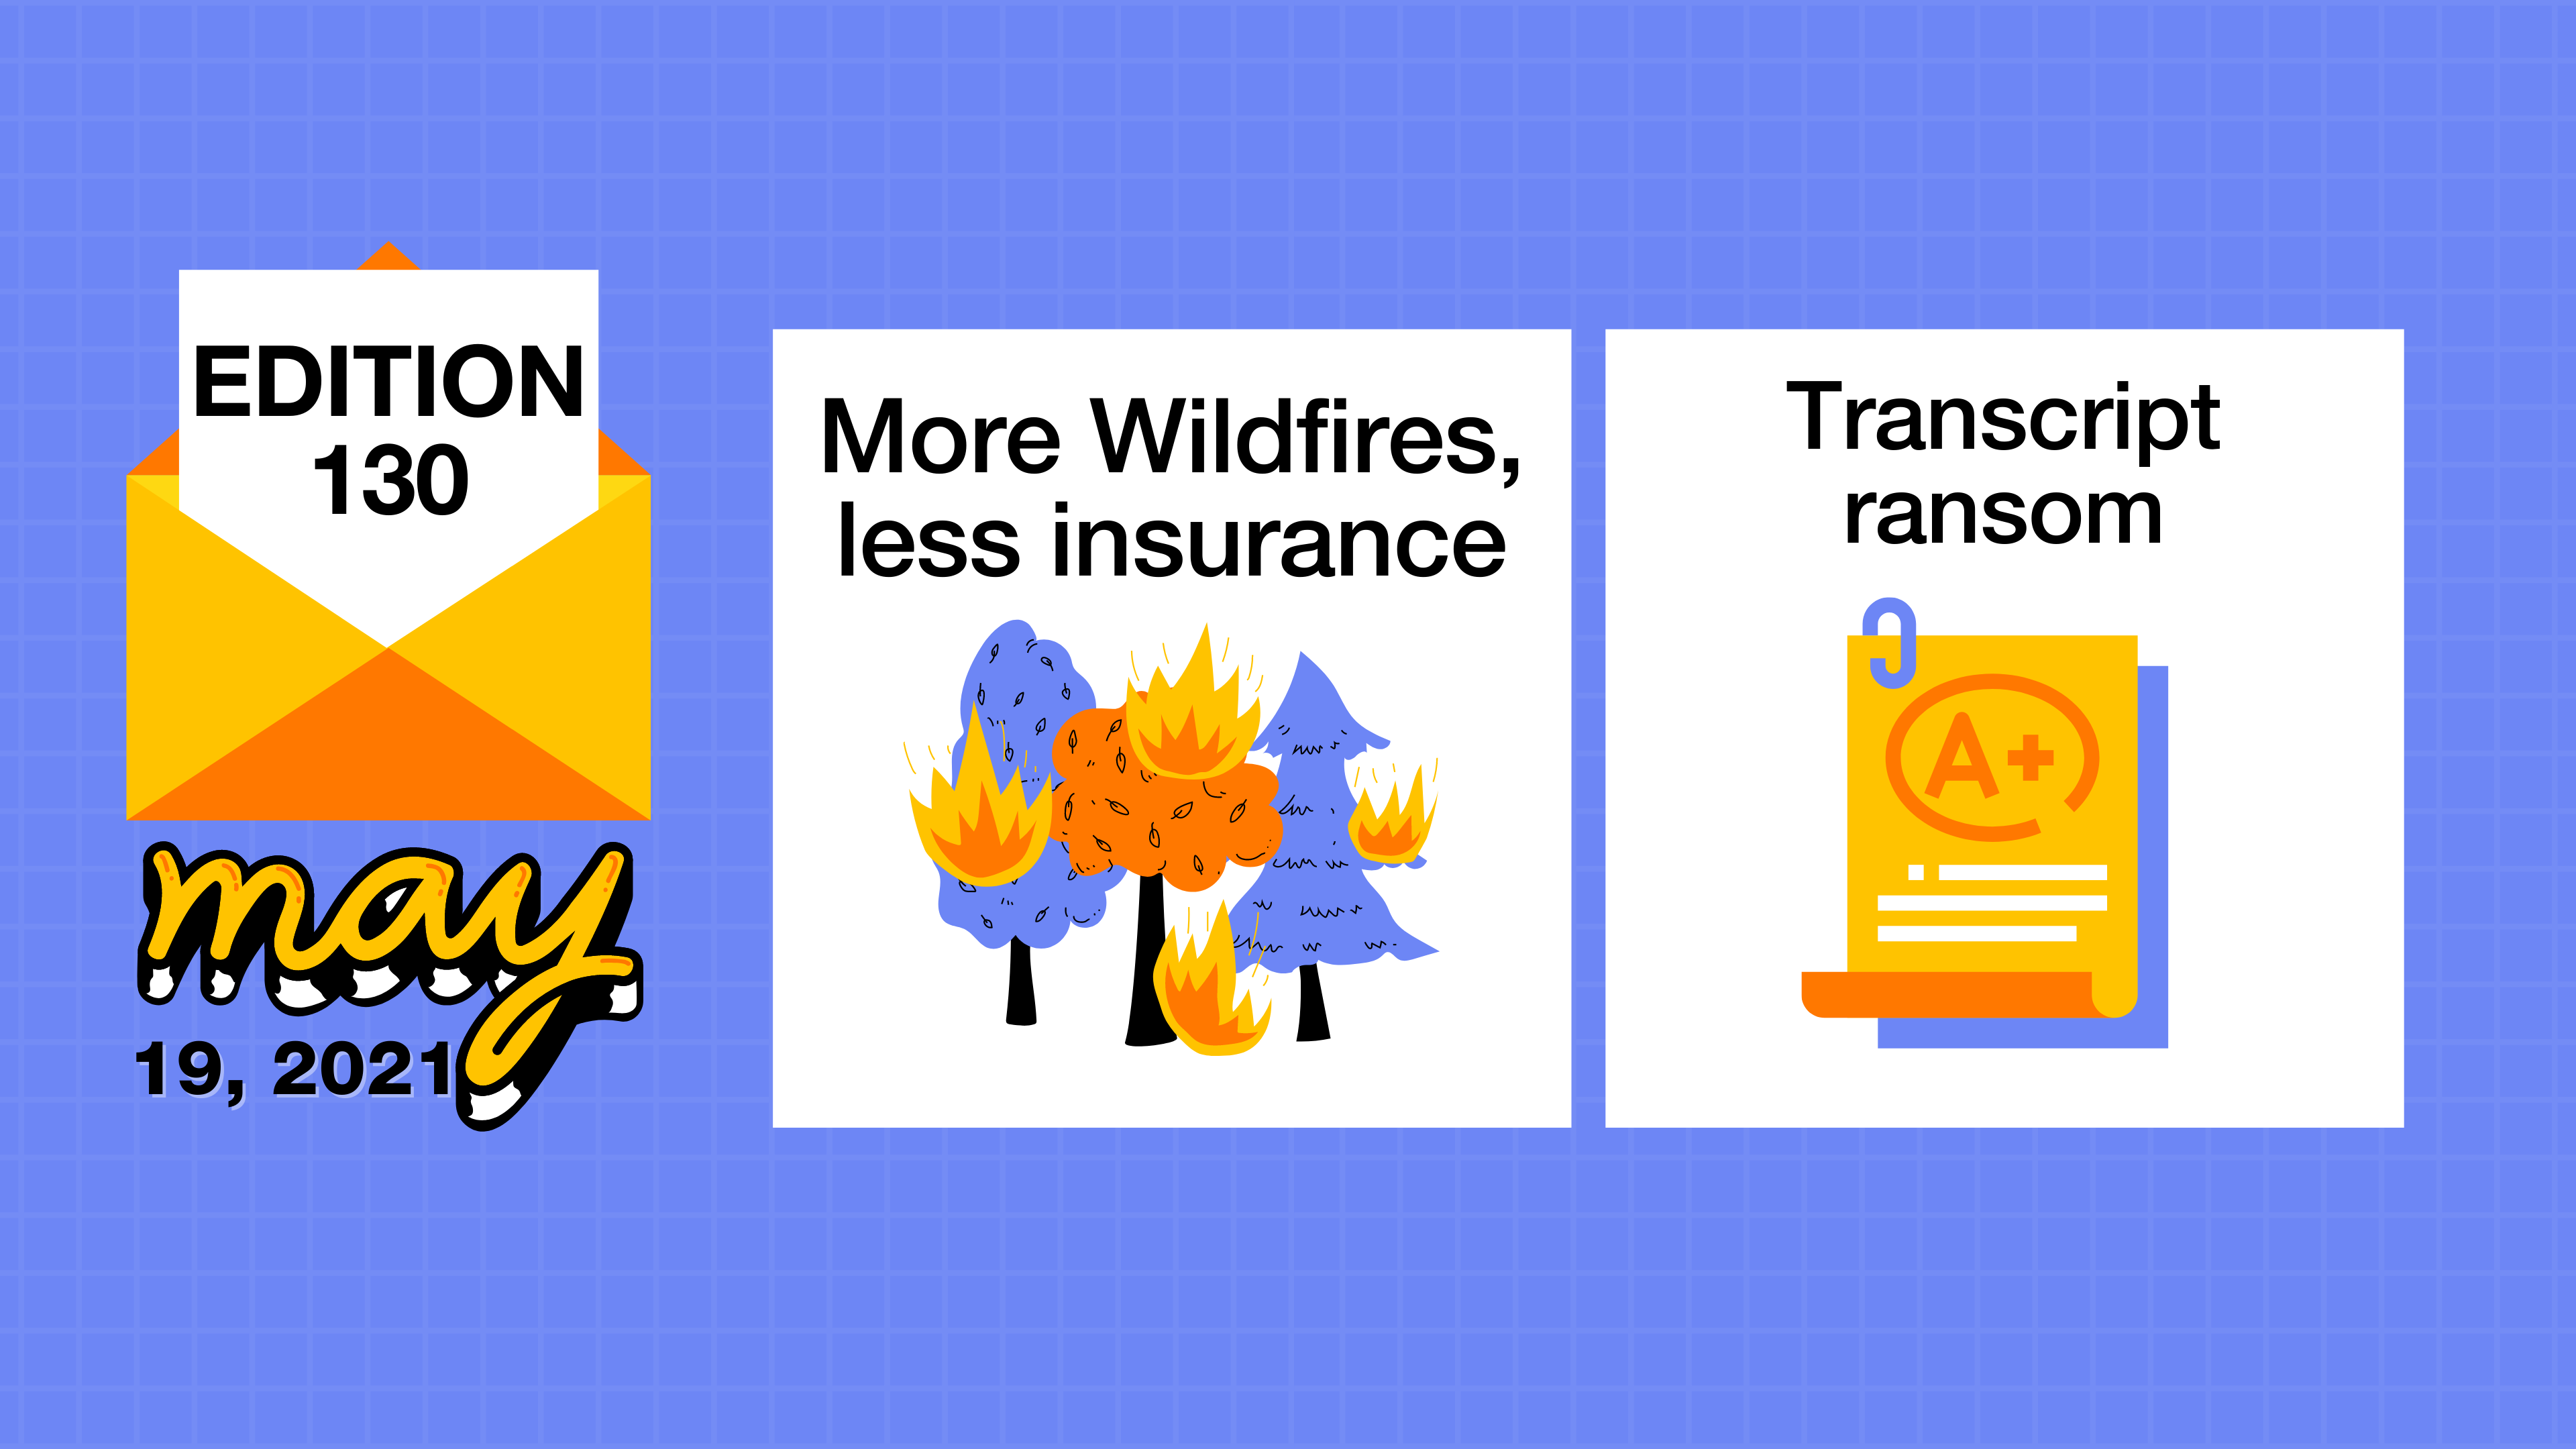 Wildfire insurance options and withheld undergraduate transcripts